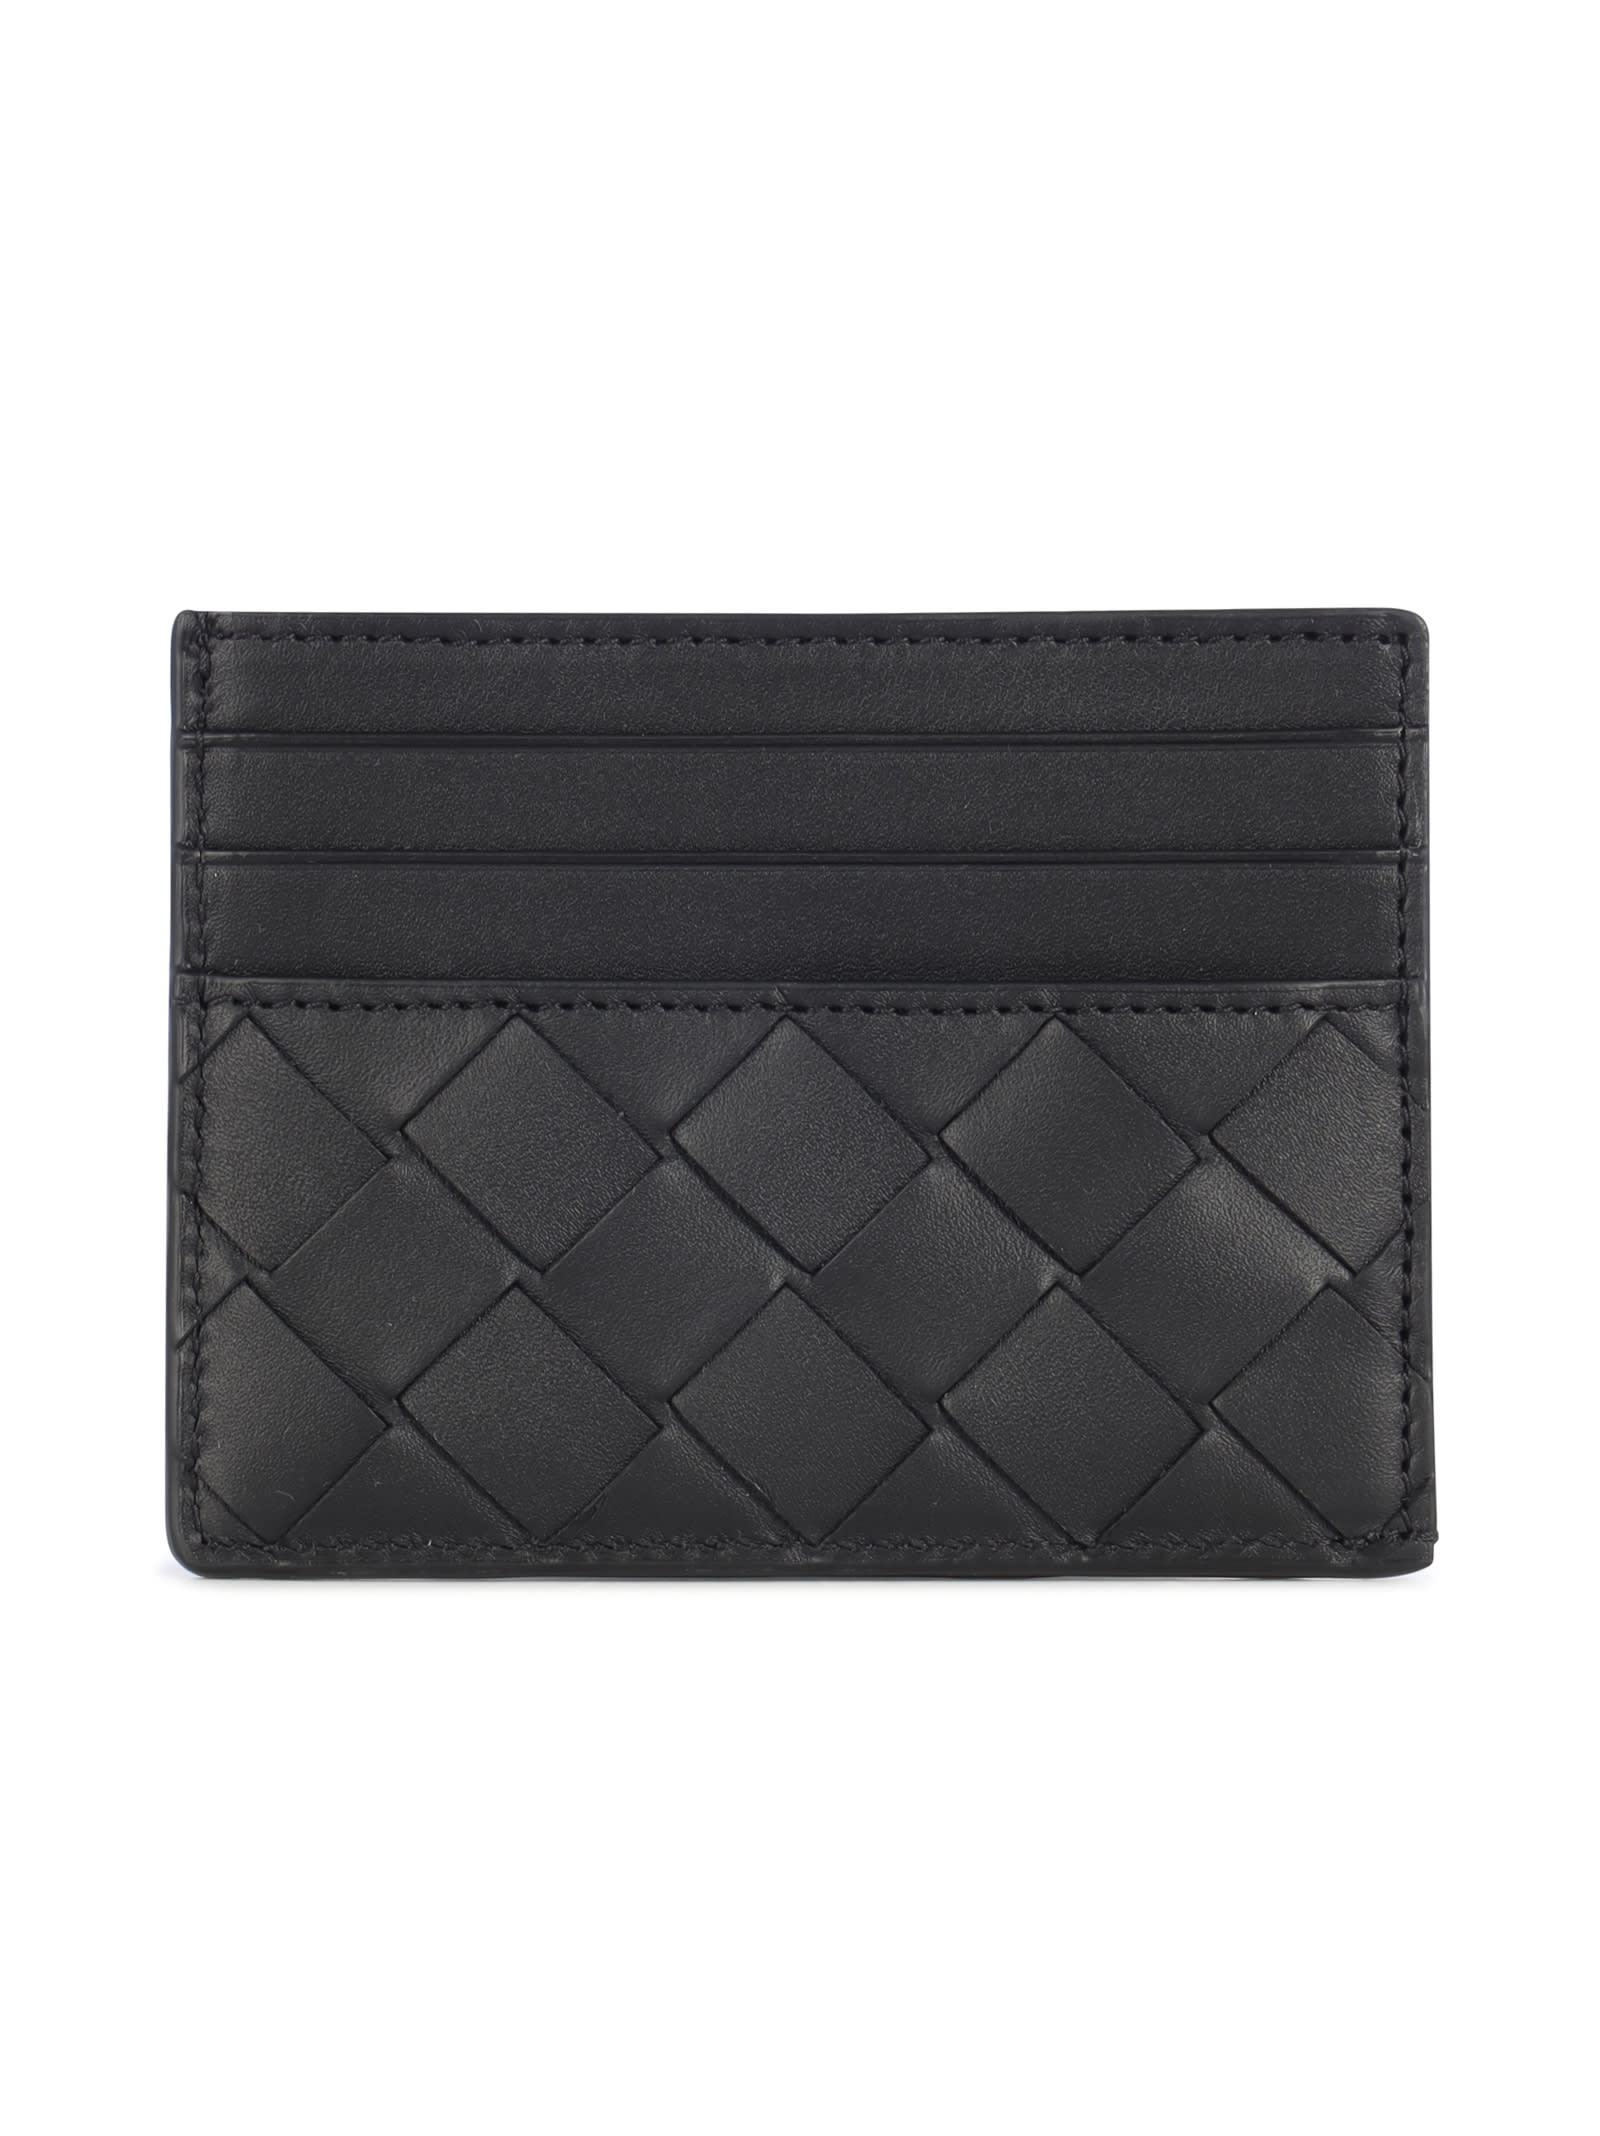 Bottega Veneta Braided Card Holder